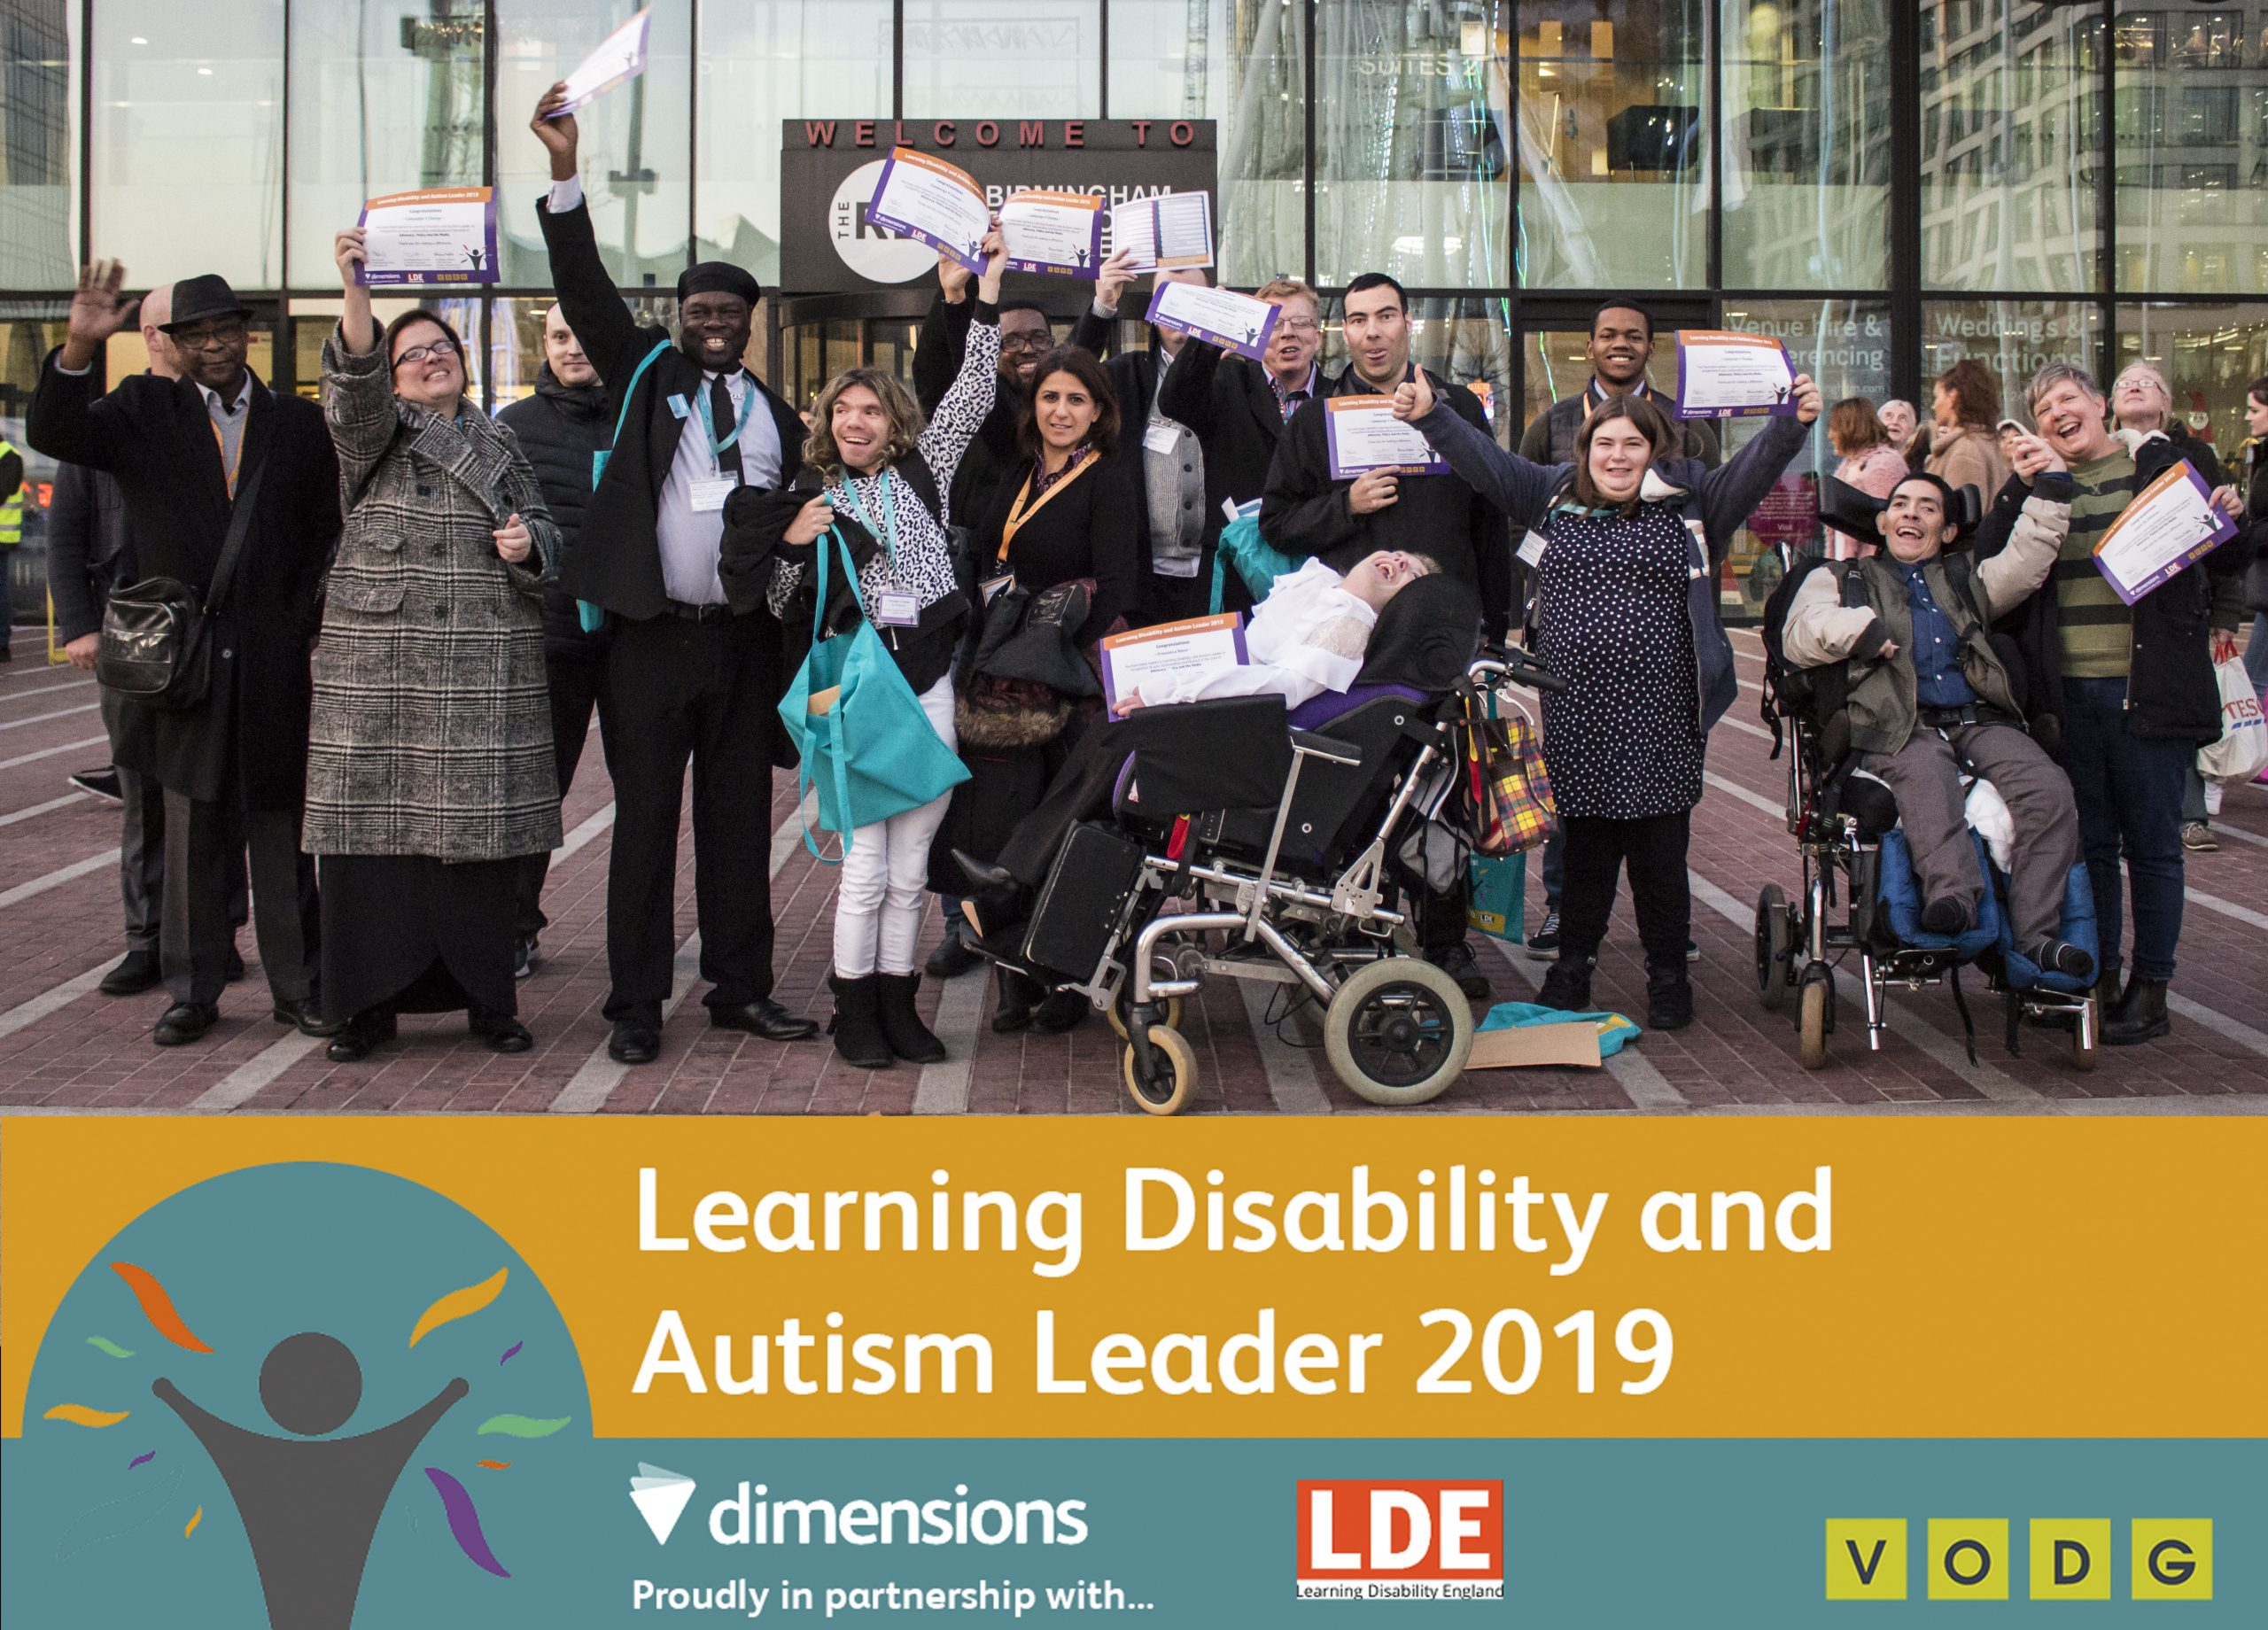 C4C awarded as a Learning Disability and Autism Leader in 2019